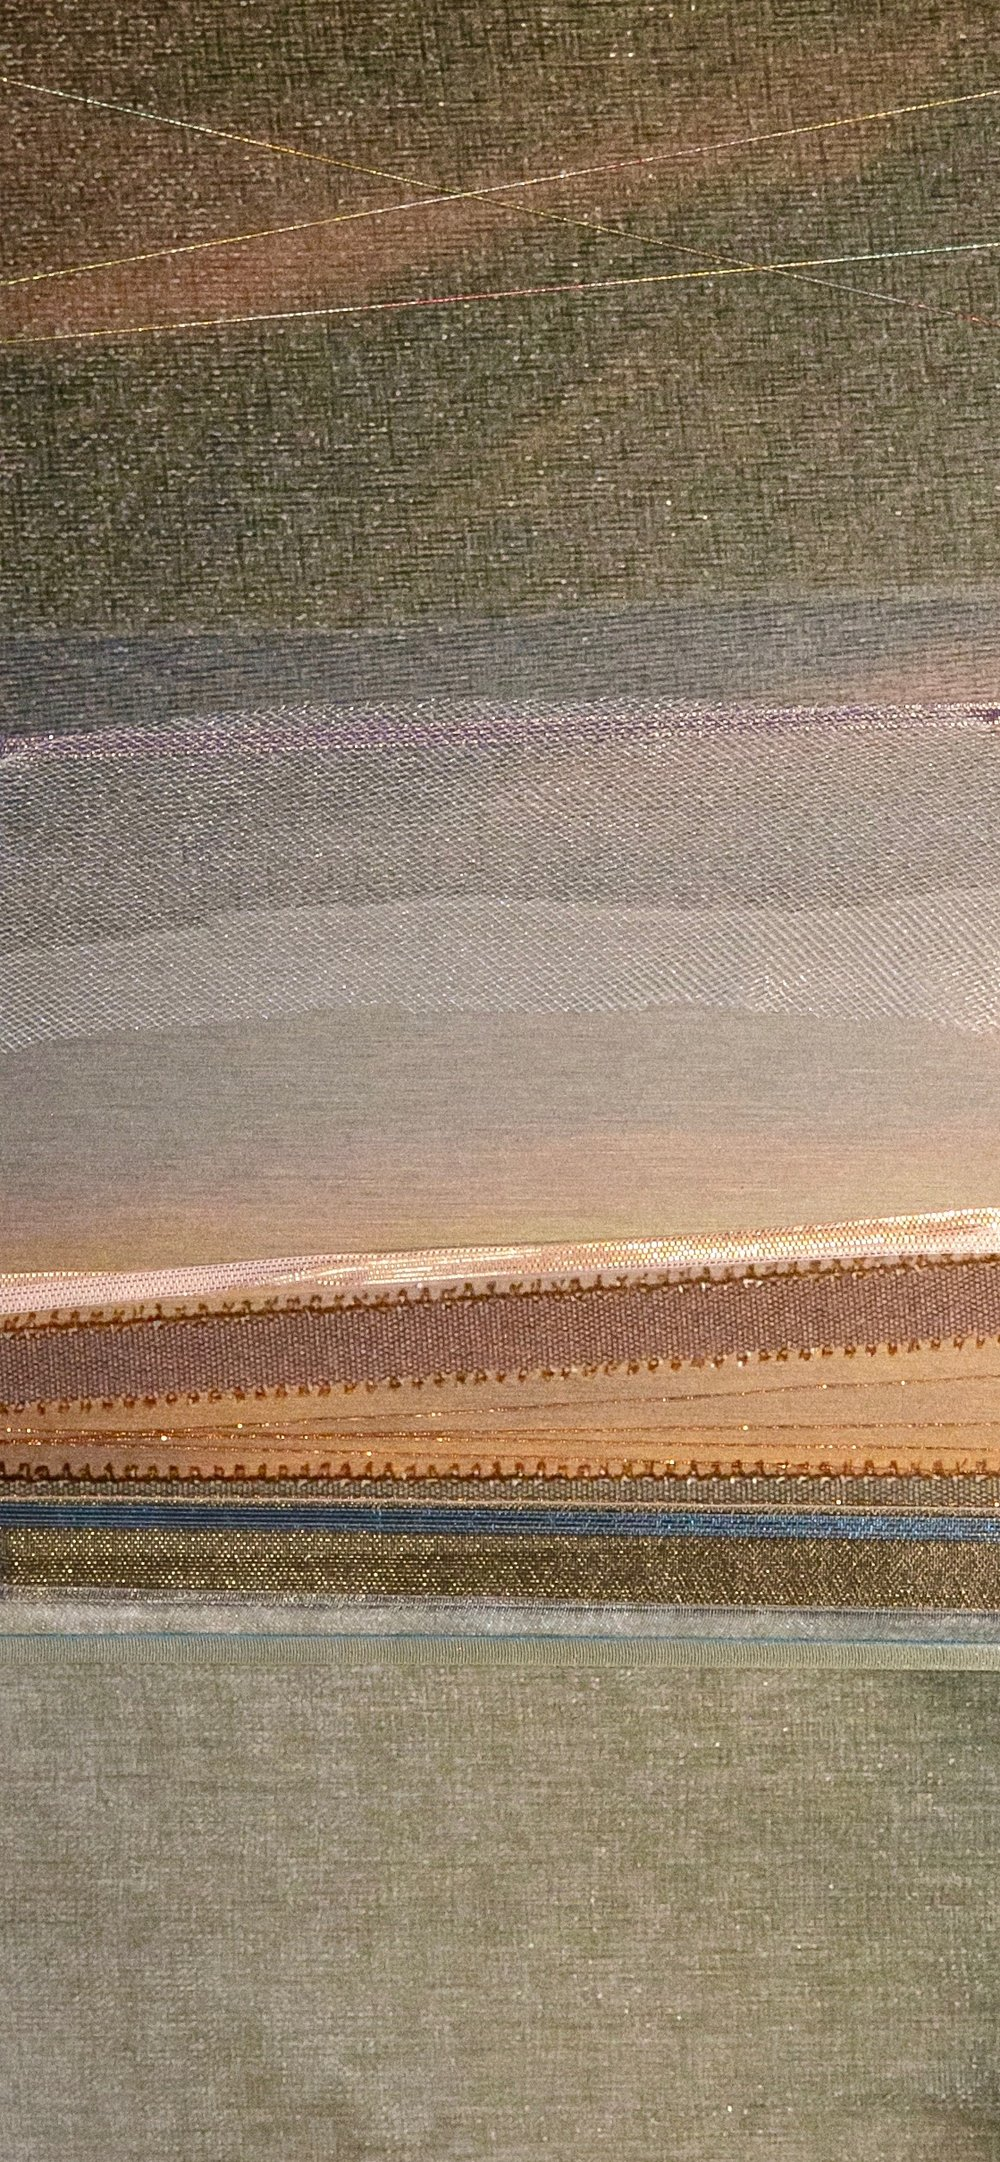 "Landscapes Series    Hazy Ocean (Detail)   12"" x 32""  Brushed Metal Print with Silks  2018"